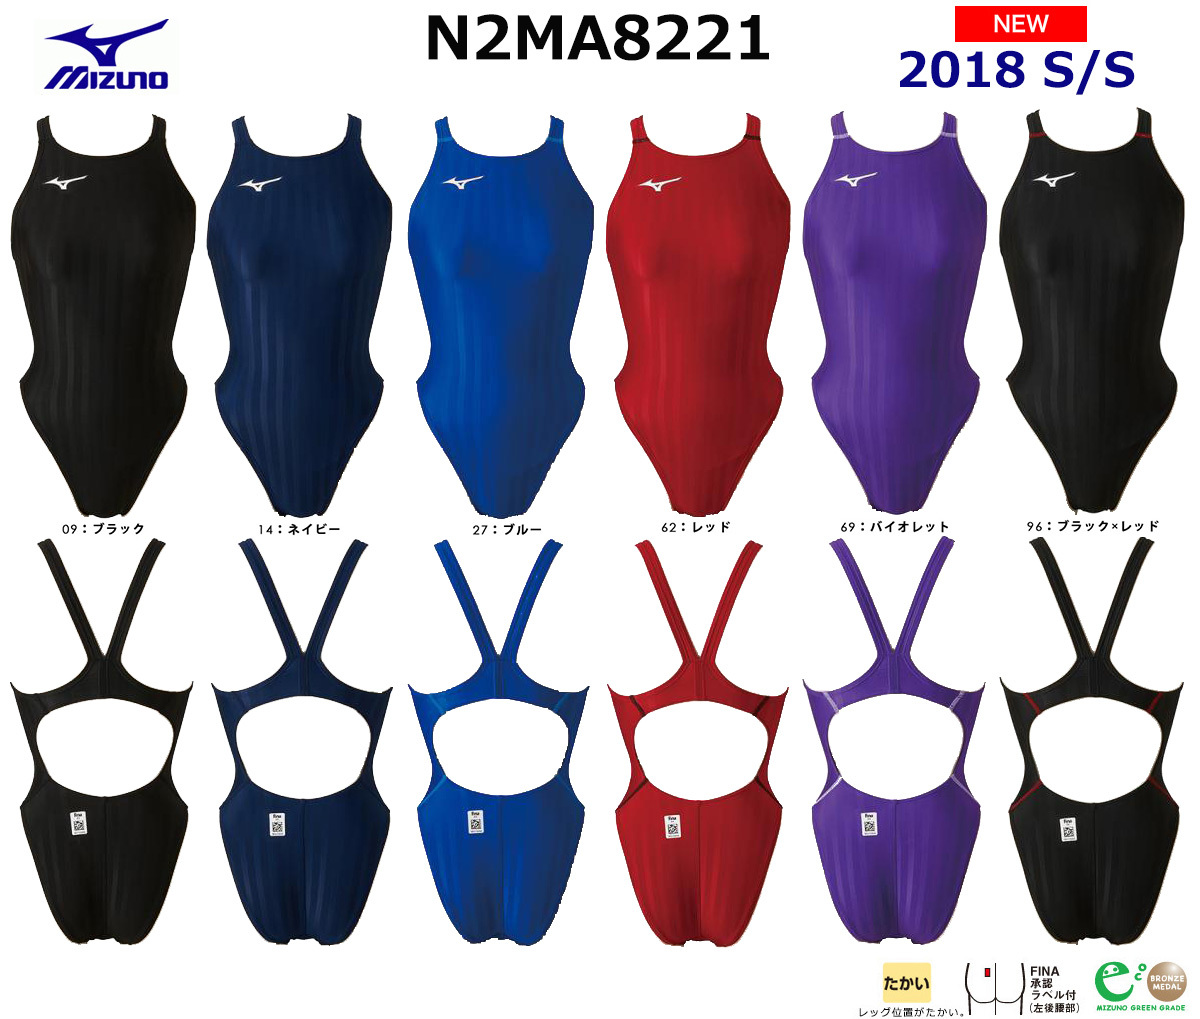 Mizuno swimsuit N2MA8221 all colors